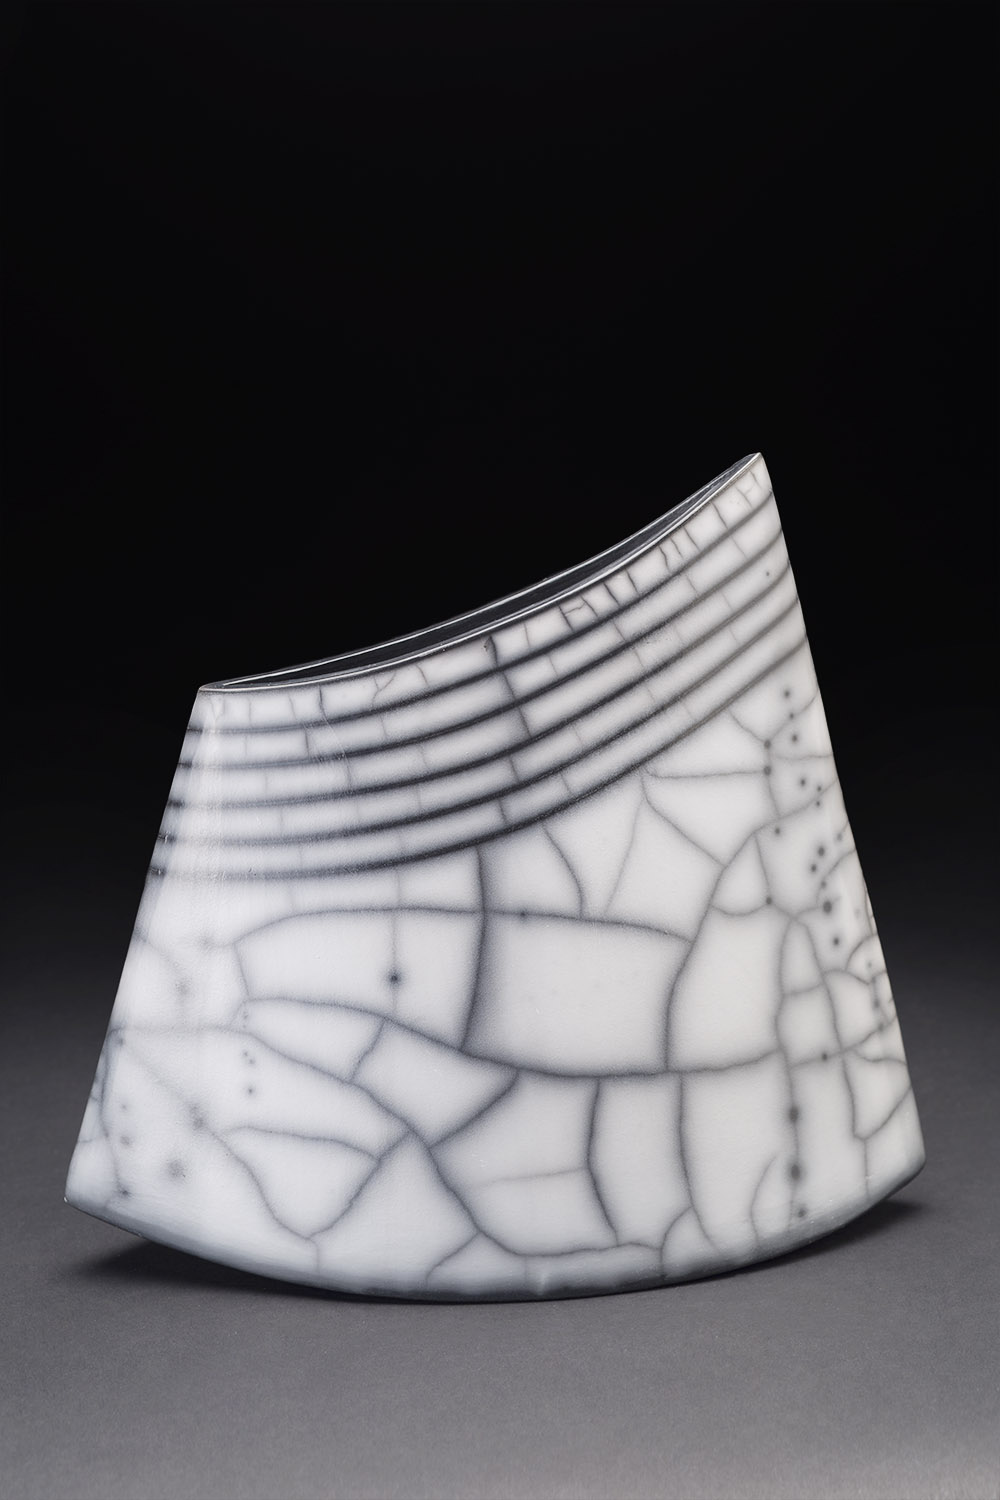 Simcha Even-Chen    Untitled  , 2014 Slab-built, burnished, terra sigillata, Naked Raku 10 x 11 x 4.25 inches 25.4 x 27.9 x 10.8 cm SEC 7